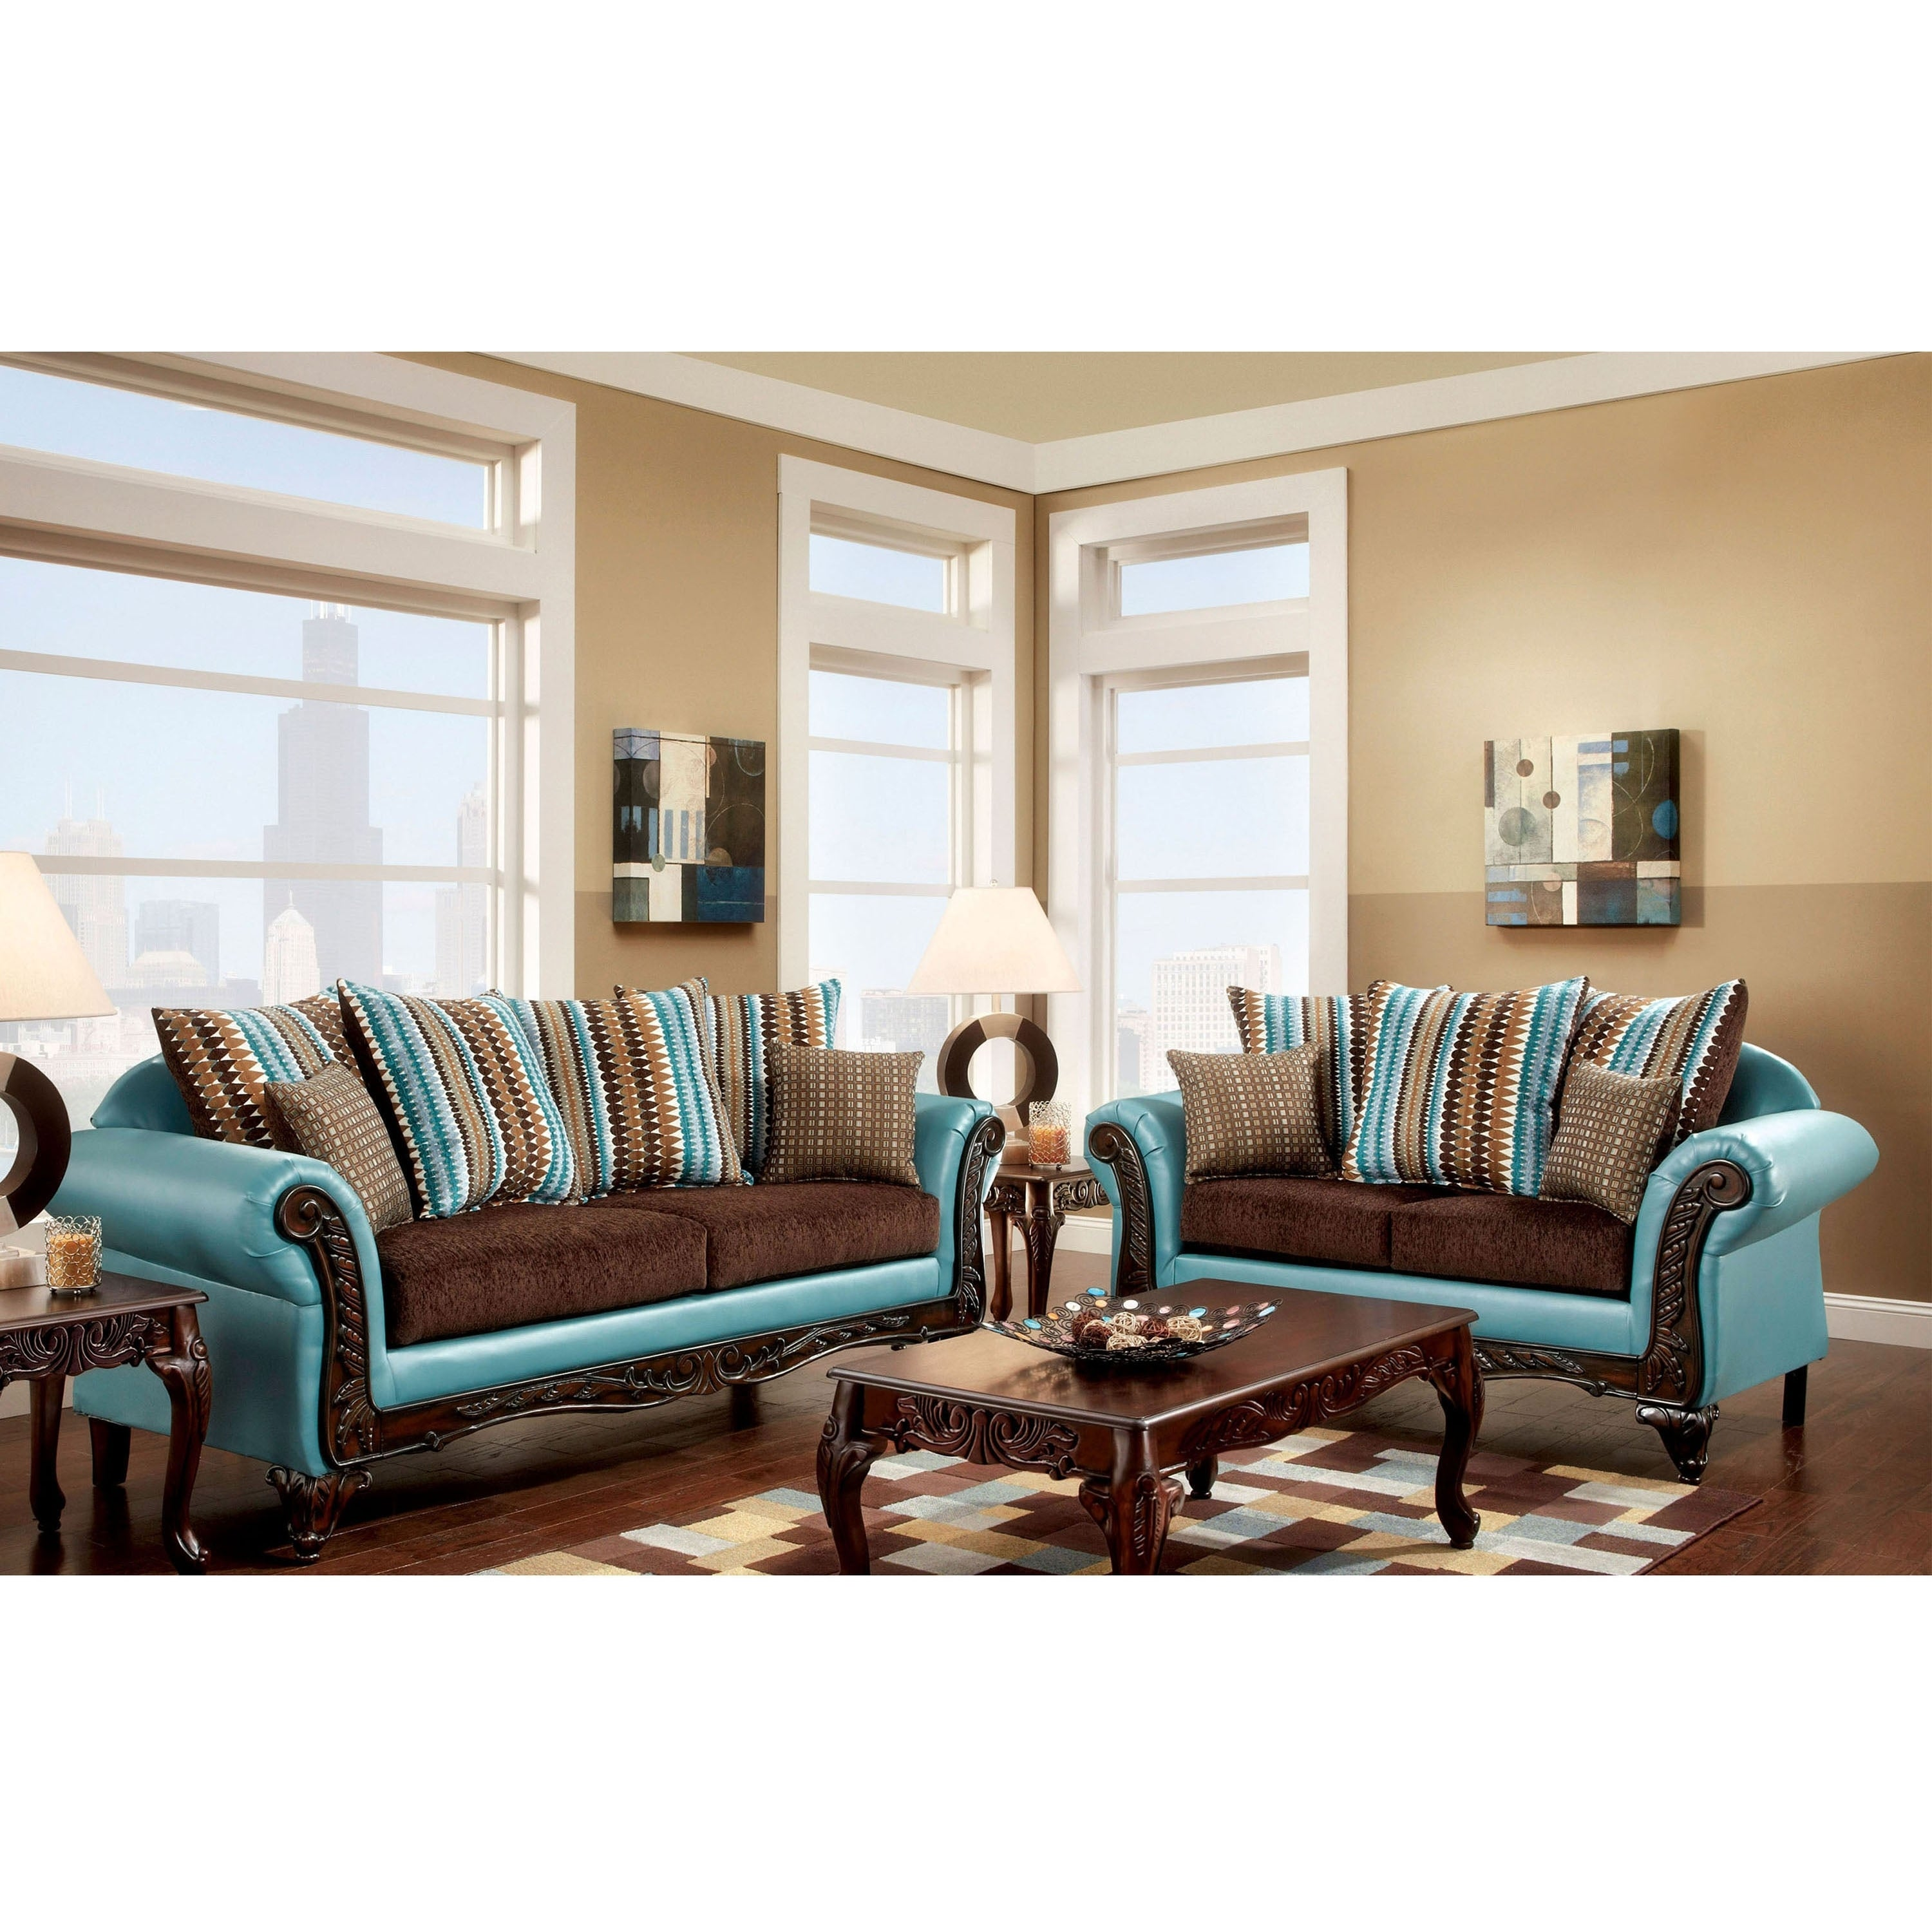 Terrific Destane Transitional Teal 2 Piece Sofa Set By Foa Inzonedesignstudio Interior Chair Design Inzonedesignstudiocom